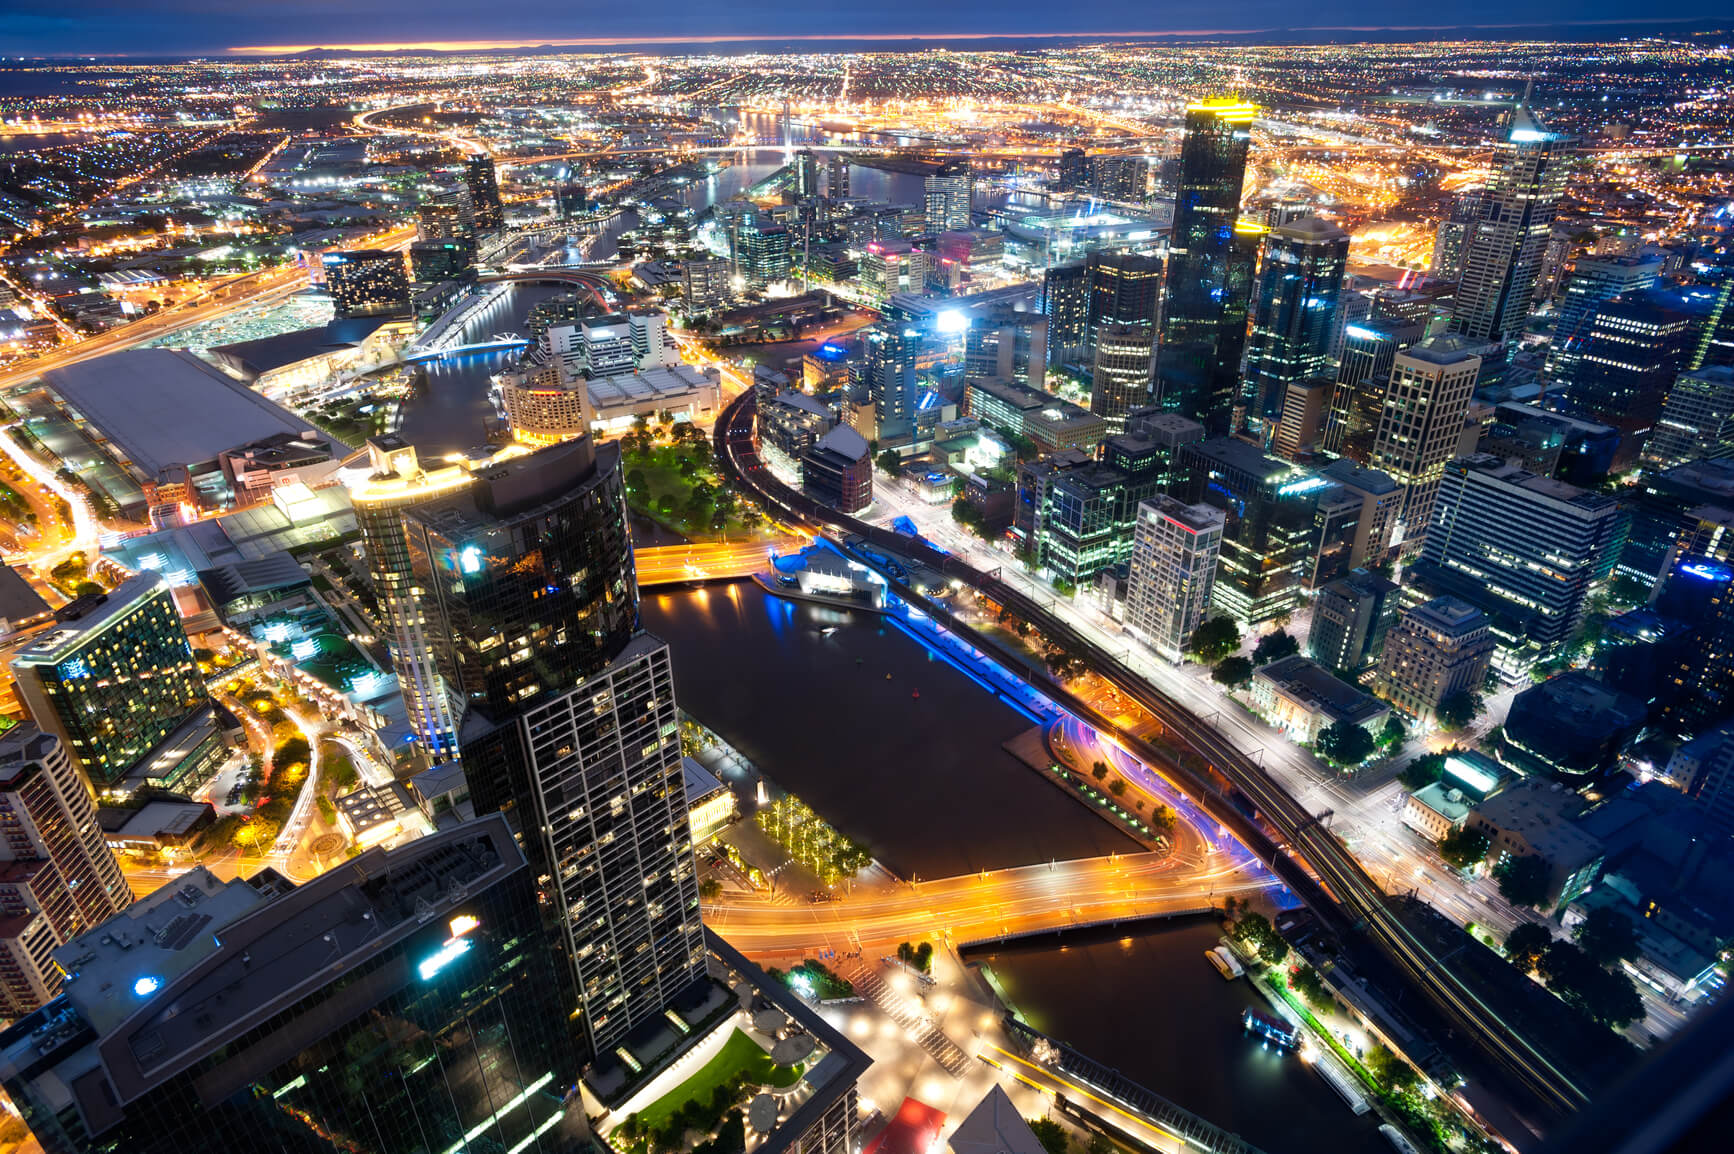 London, UK to Melbourne, Australia for only £486 roundtrip